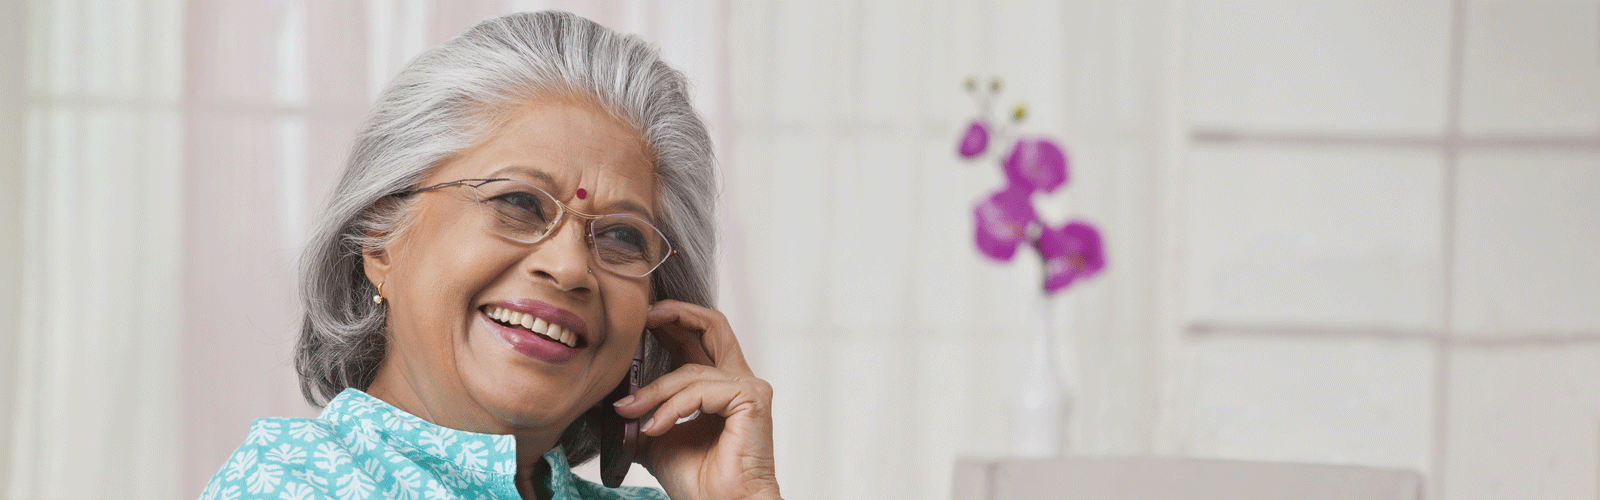 An older woman talks on the phone, smiling